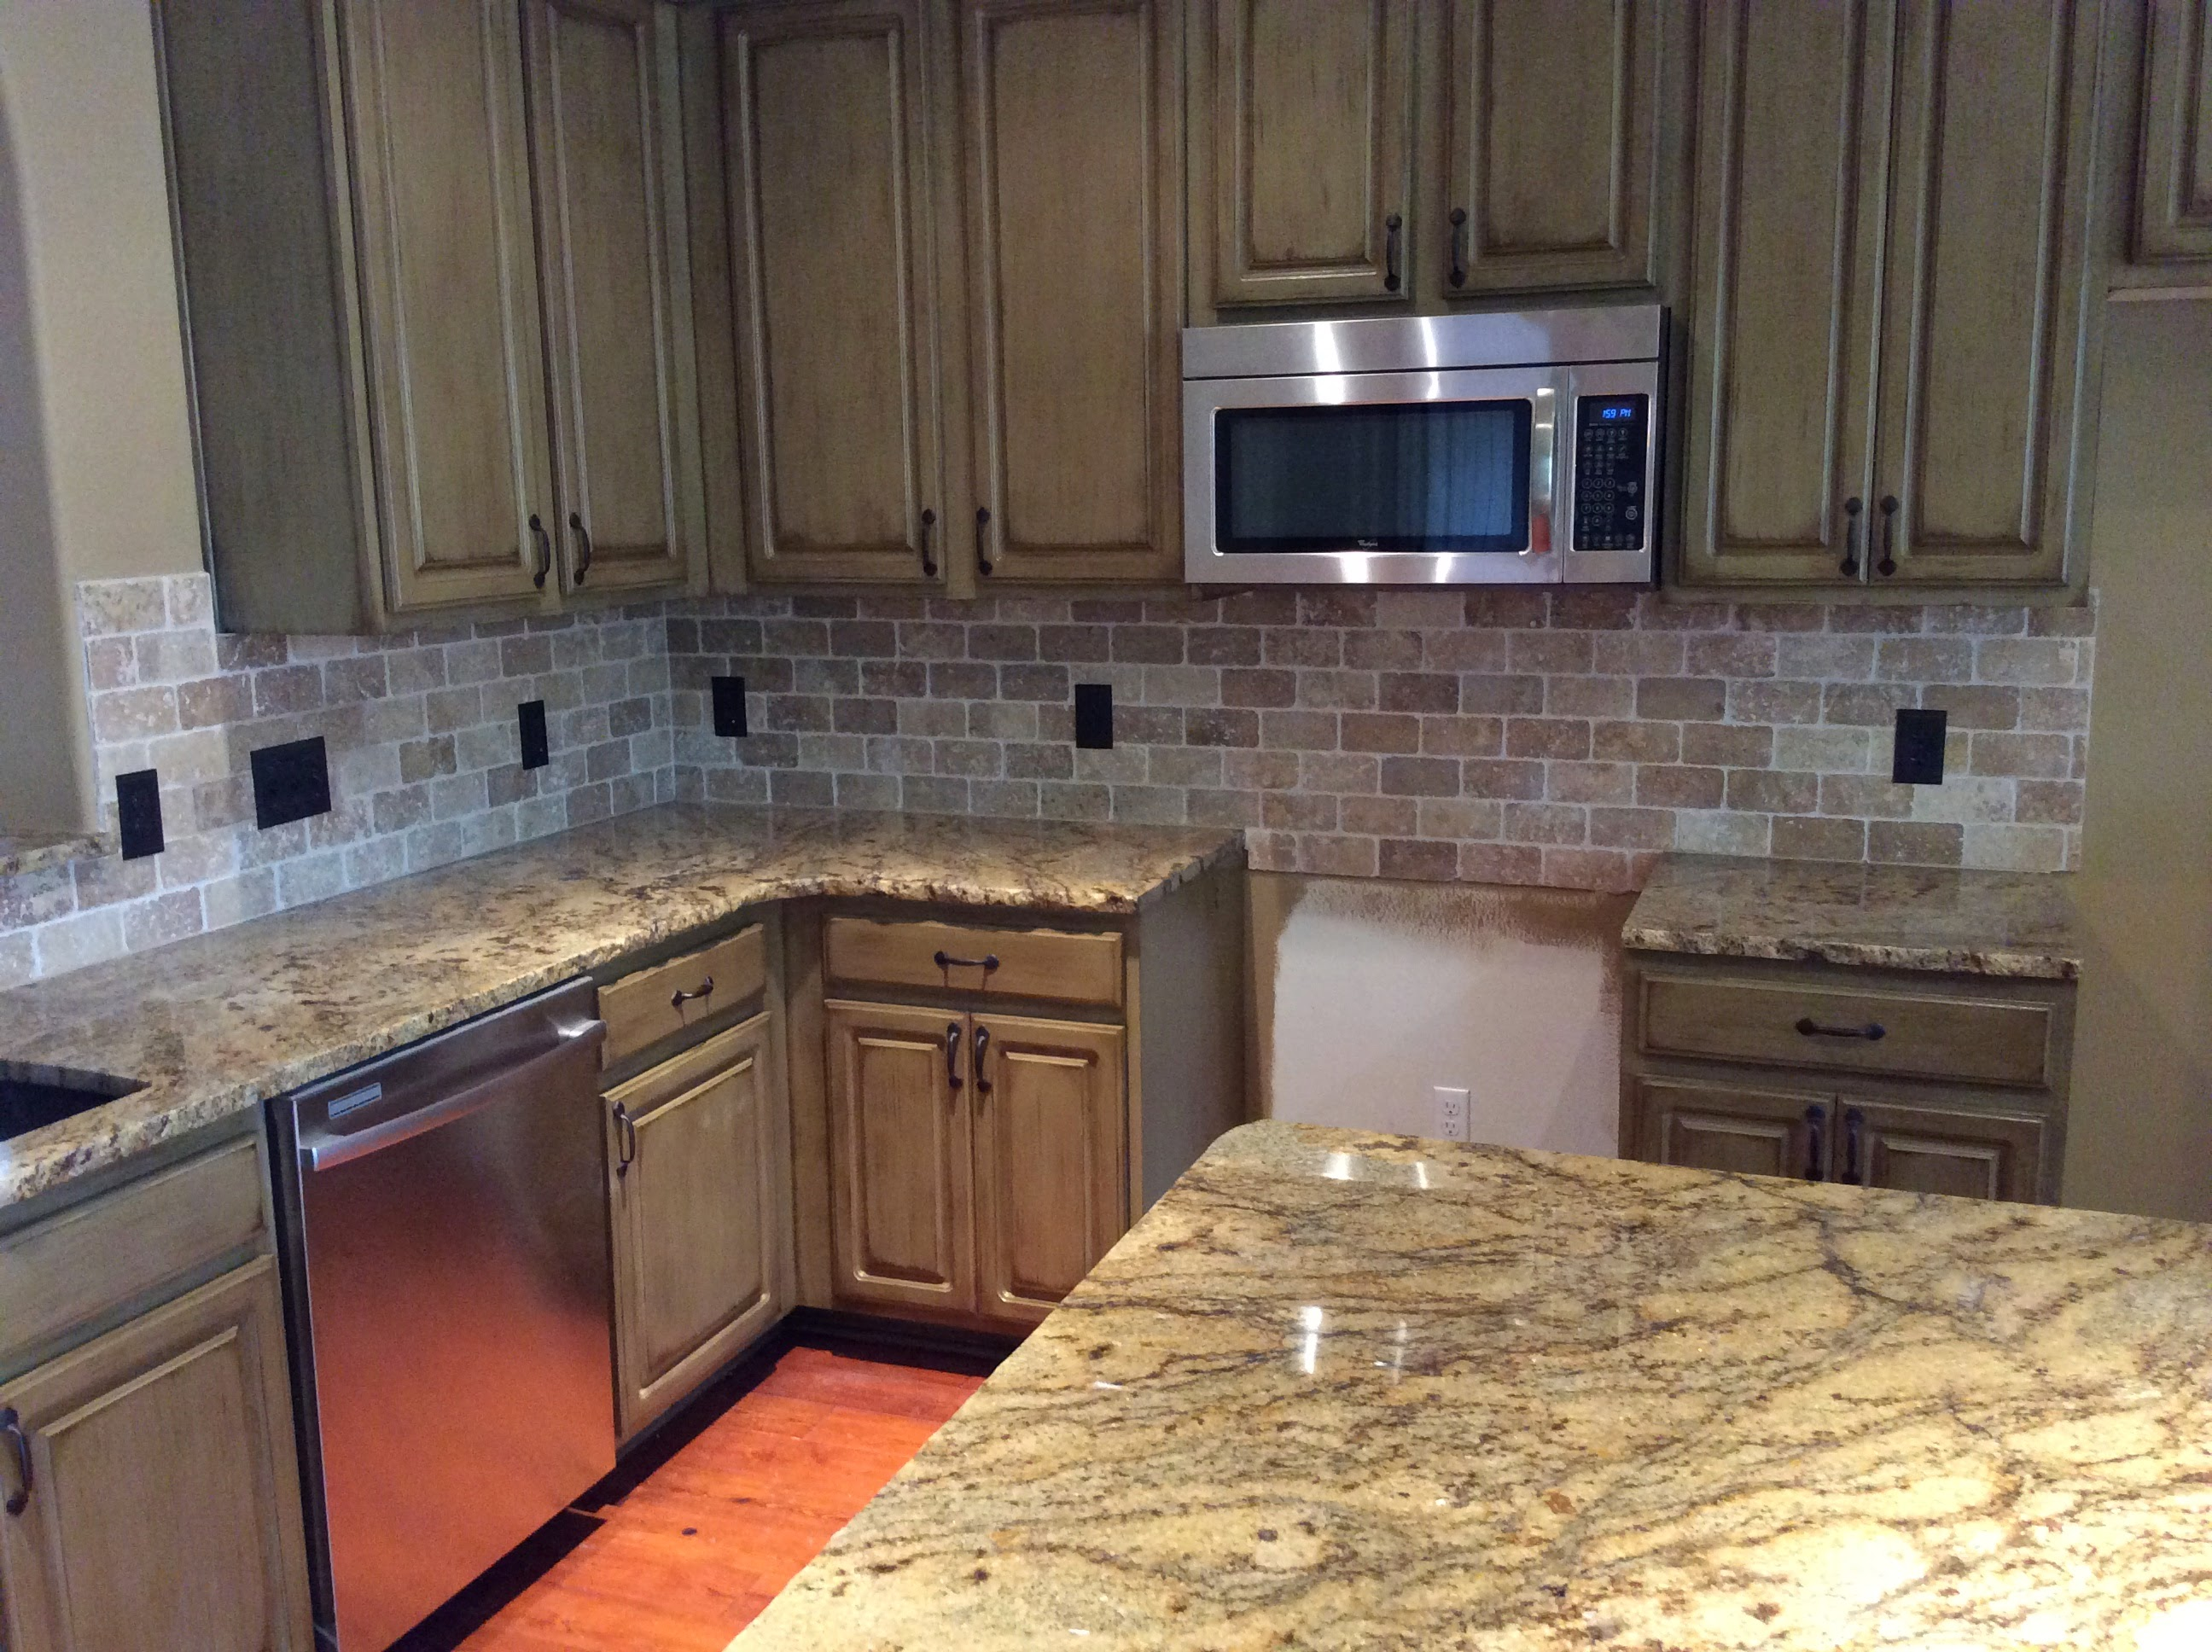 Kitchen Counter and Backsplash